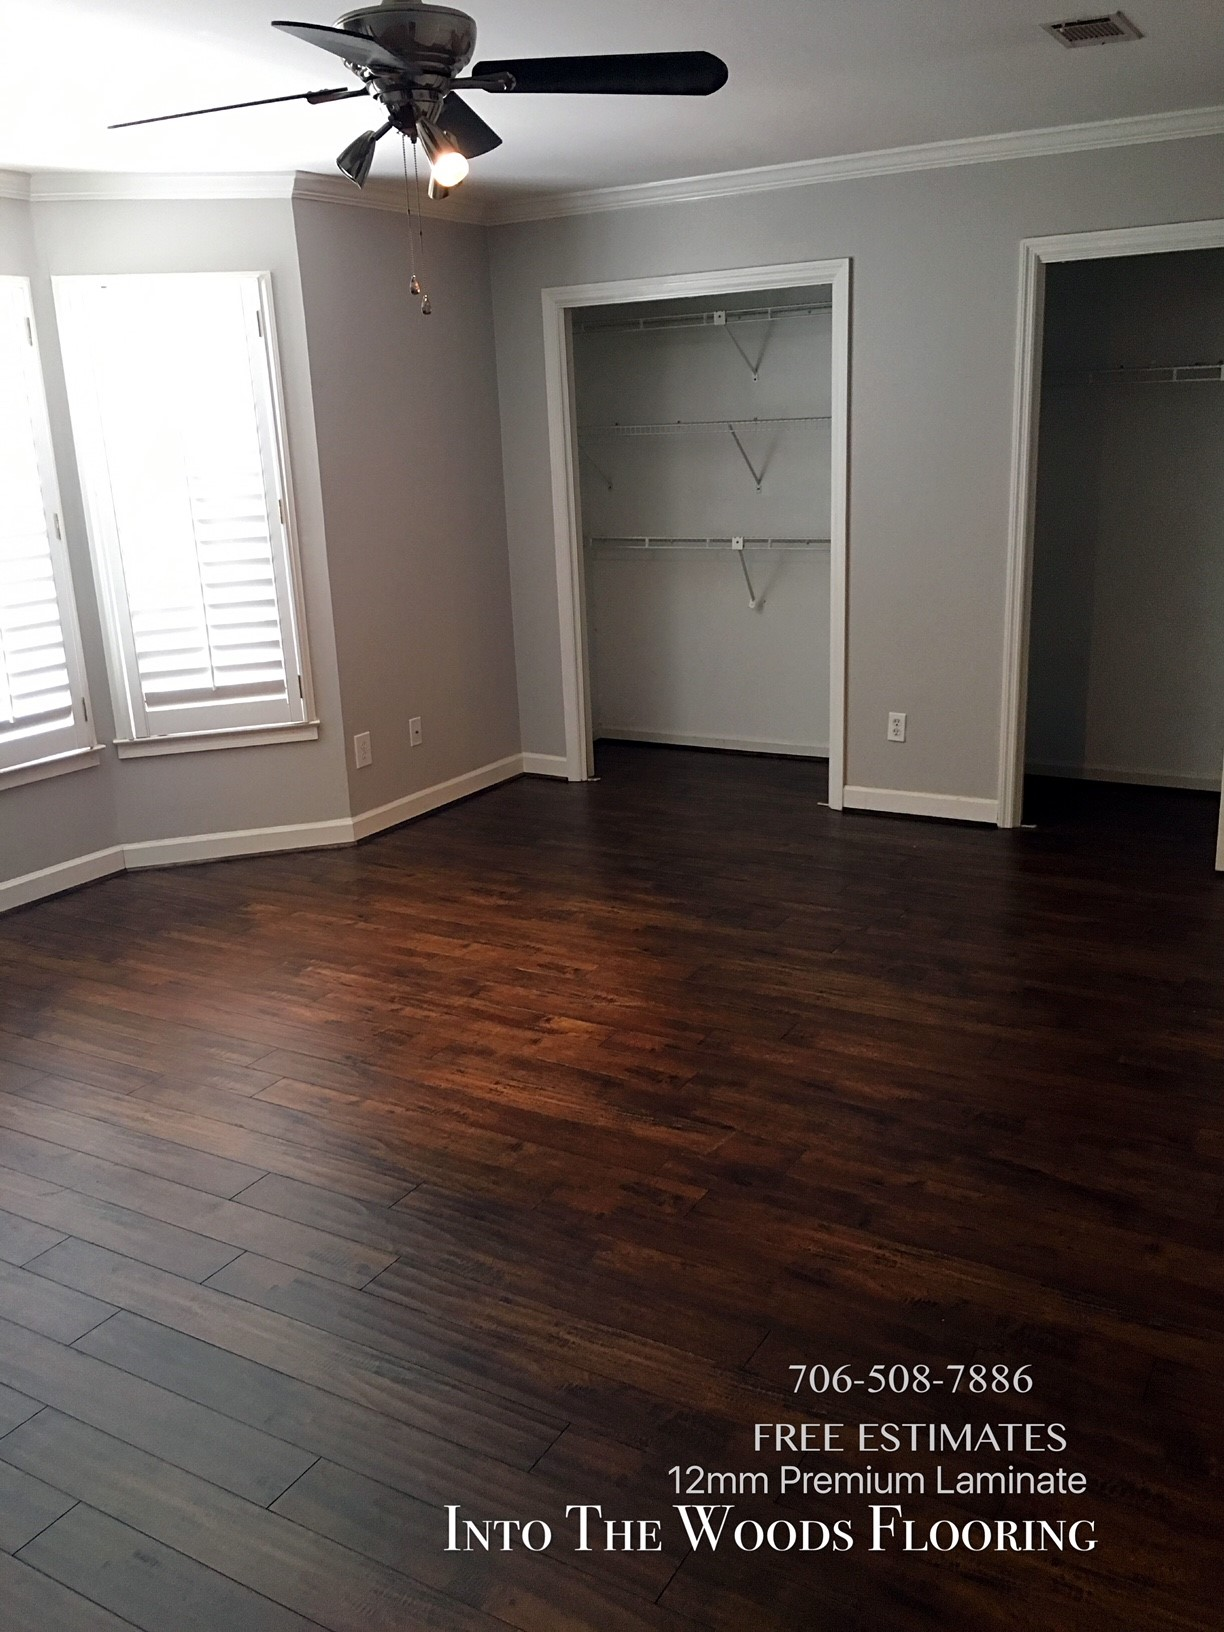 Our Work Into The Woods Flooring Llc